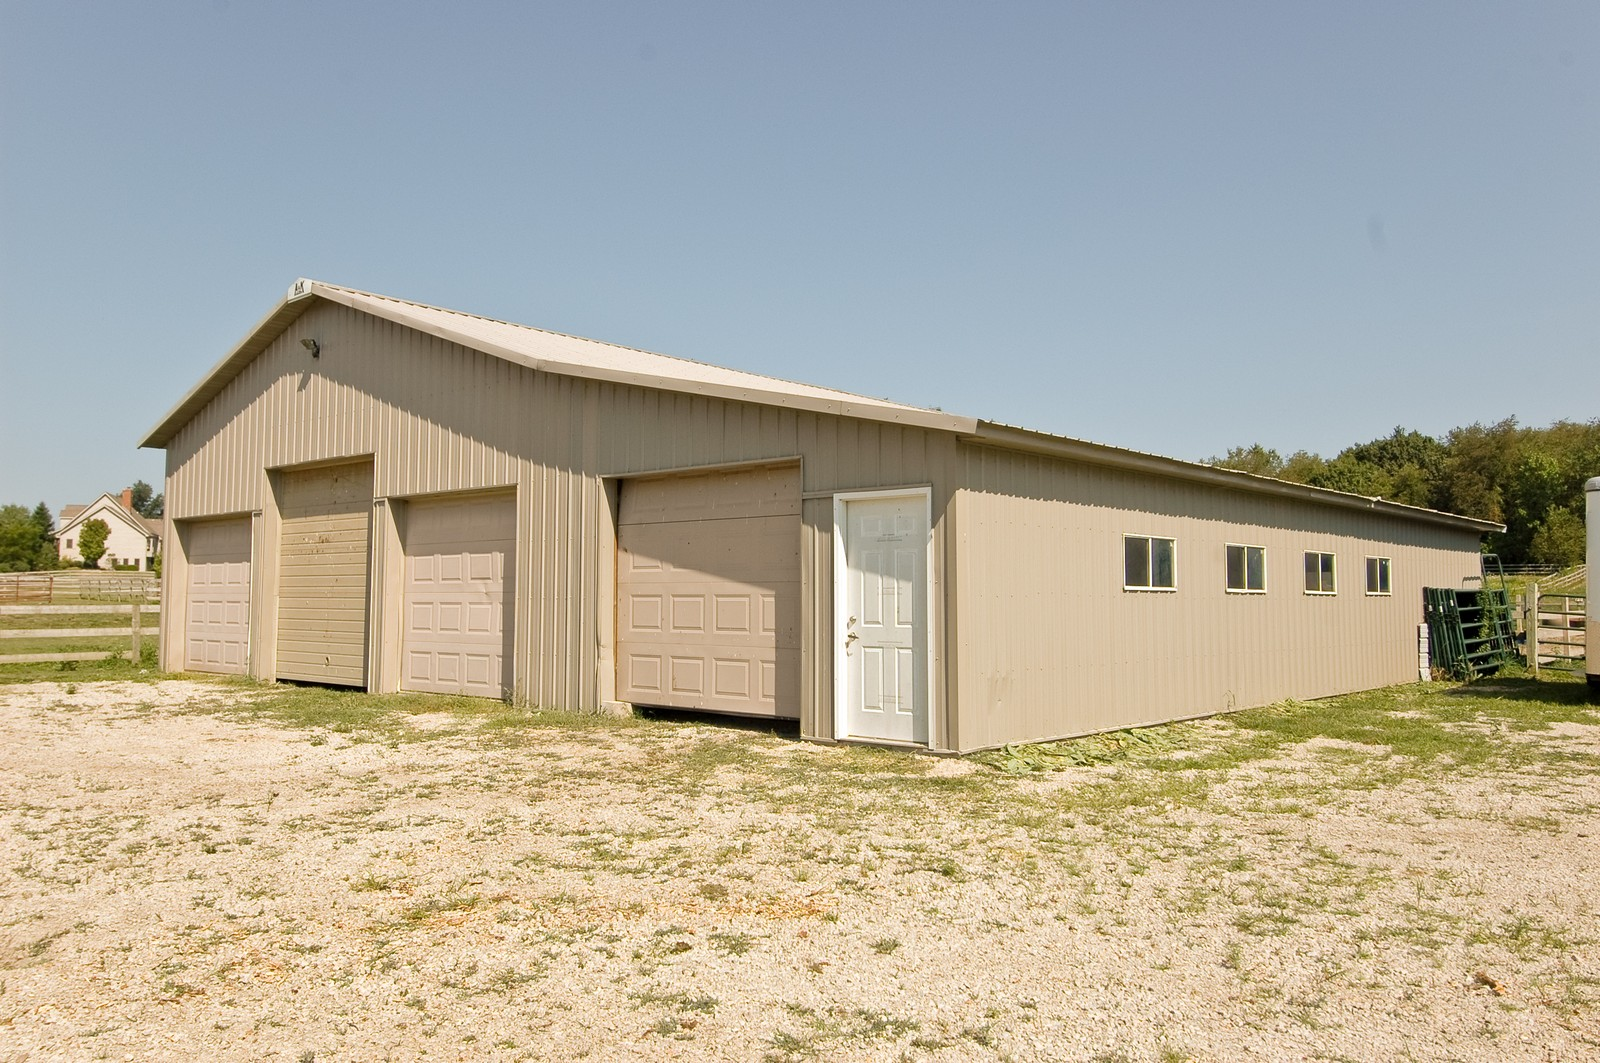 Real Estate Photography - 40W960 Chippewa Pass, Elgin, IL, 60124 - 54' x 52' 5 Stall Barn w/Tac Room & Running Water